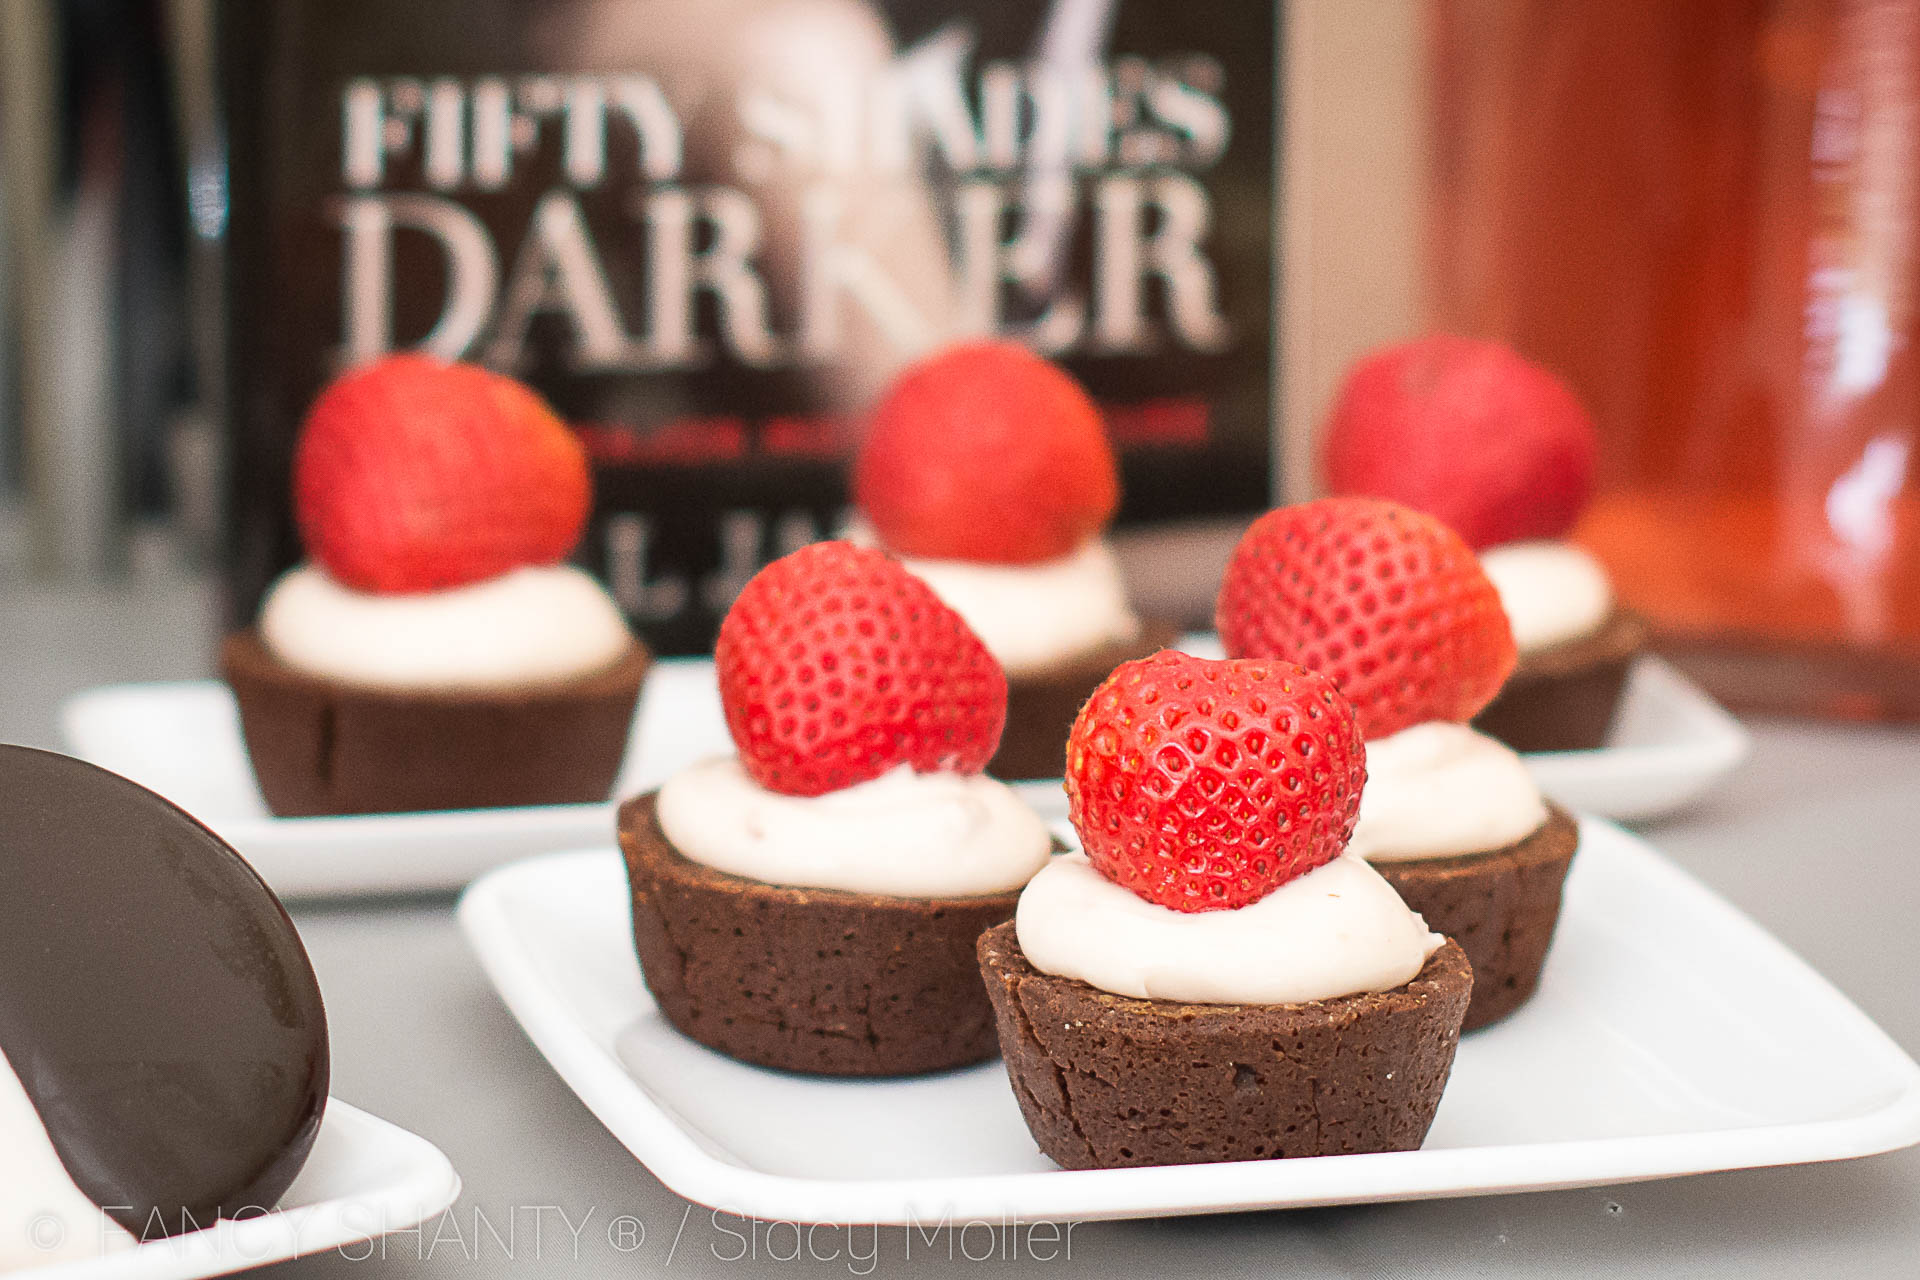 Fifty Shades Darker Party Ideas and Recipes